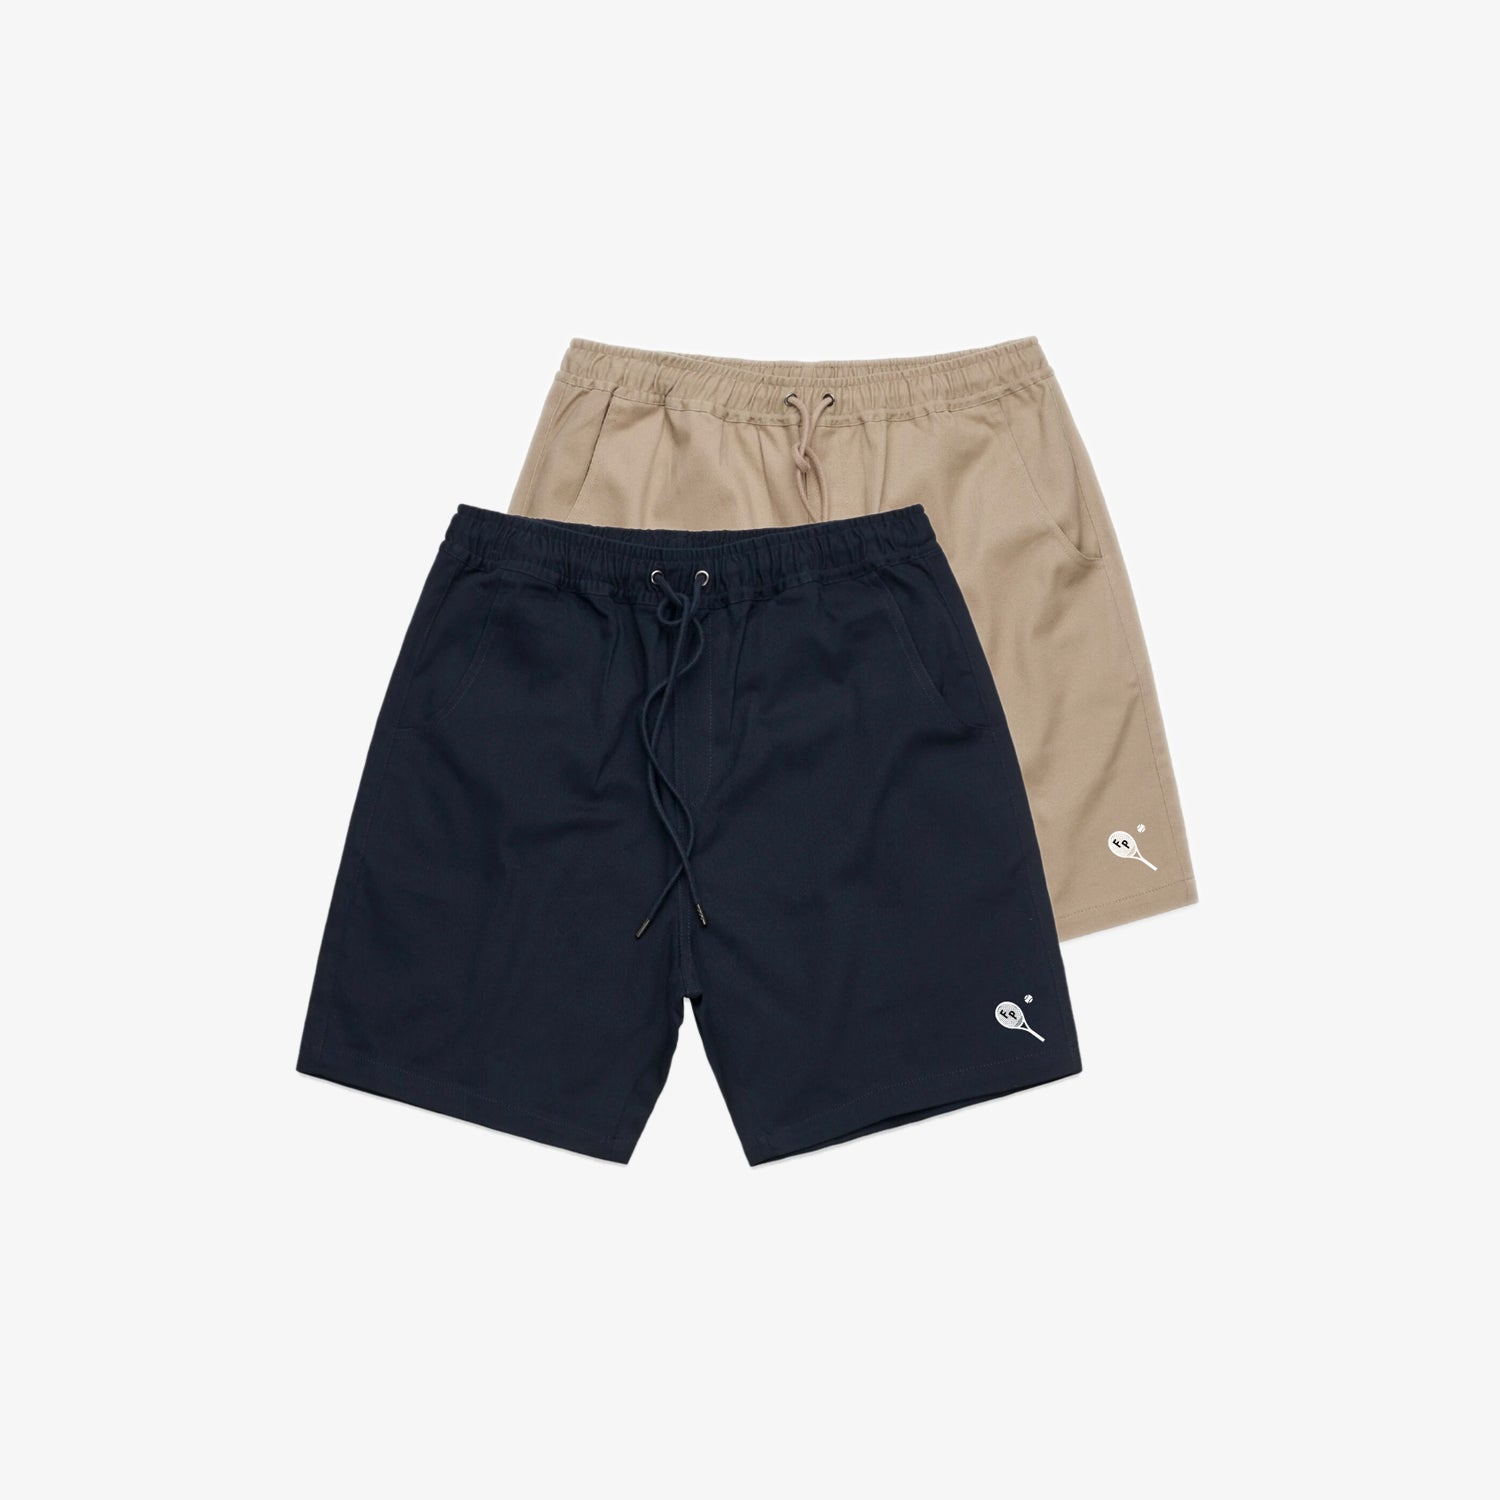 Image of FP TENNIS CLUB SHORT, KHAKI